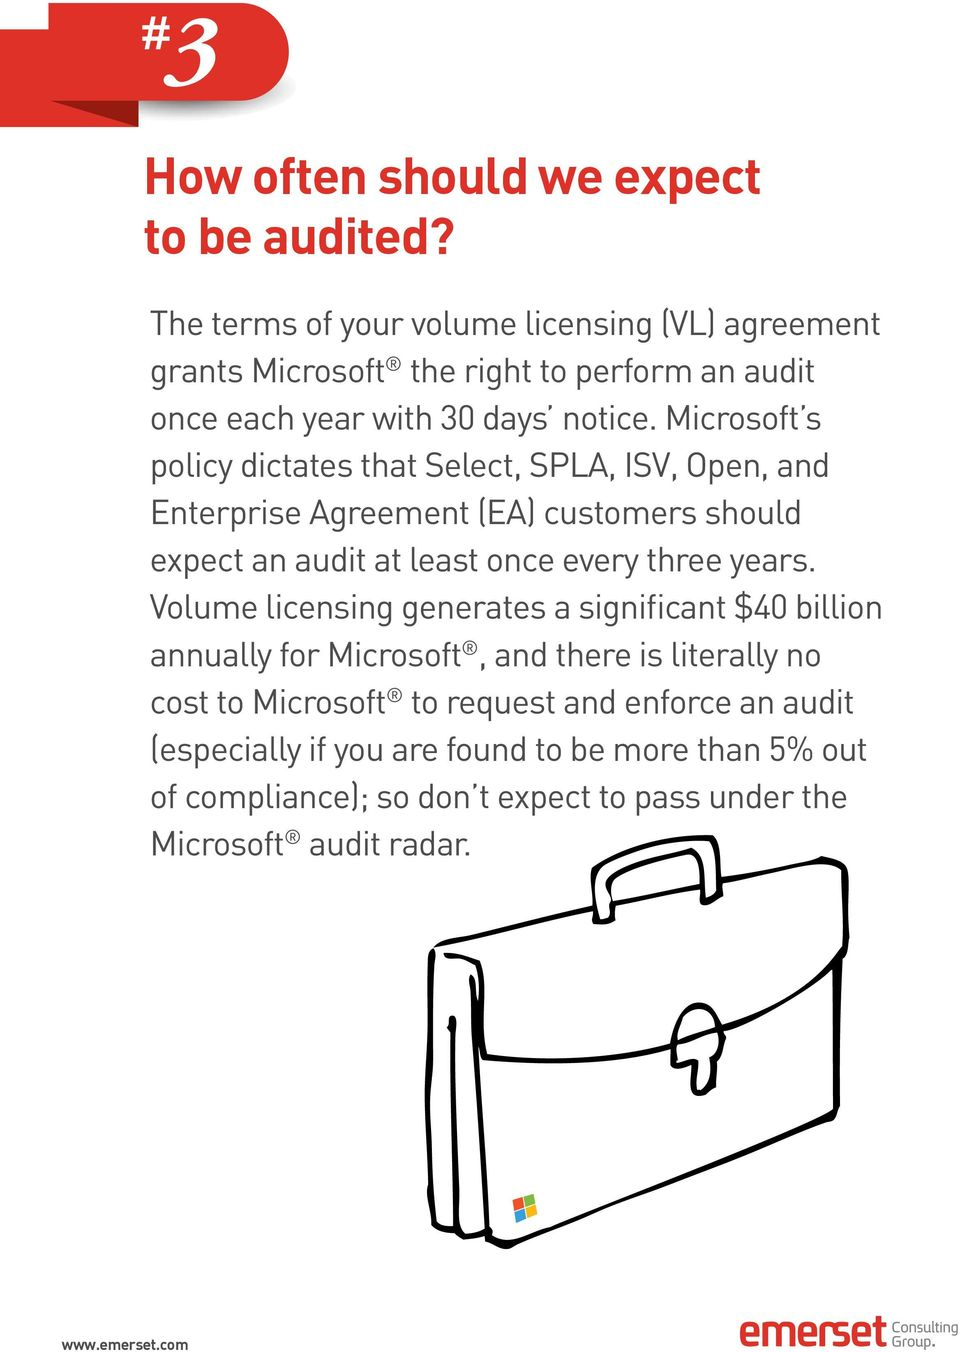 Microsoft s policy dictates that Select, SPLA, ISV, Open, and Enterprise Agreement (EA) customers should expect an audit at least once every three